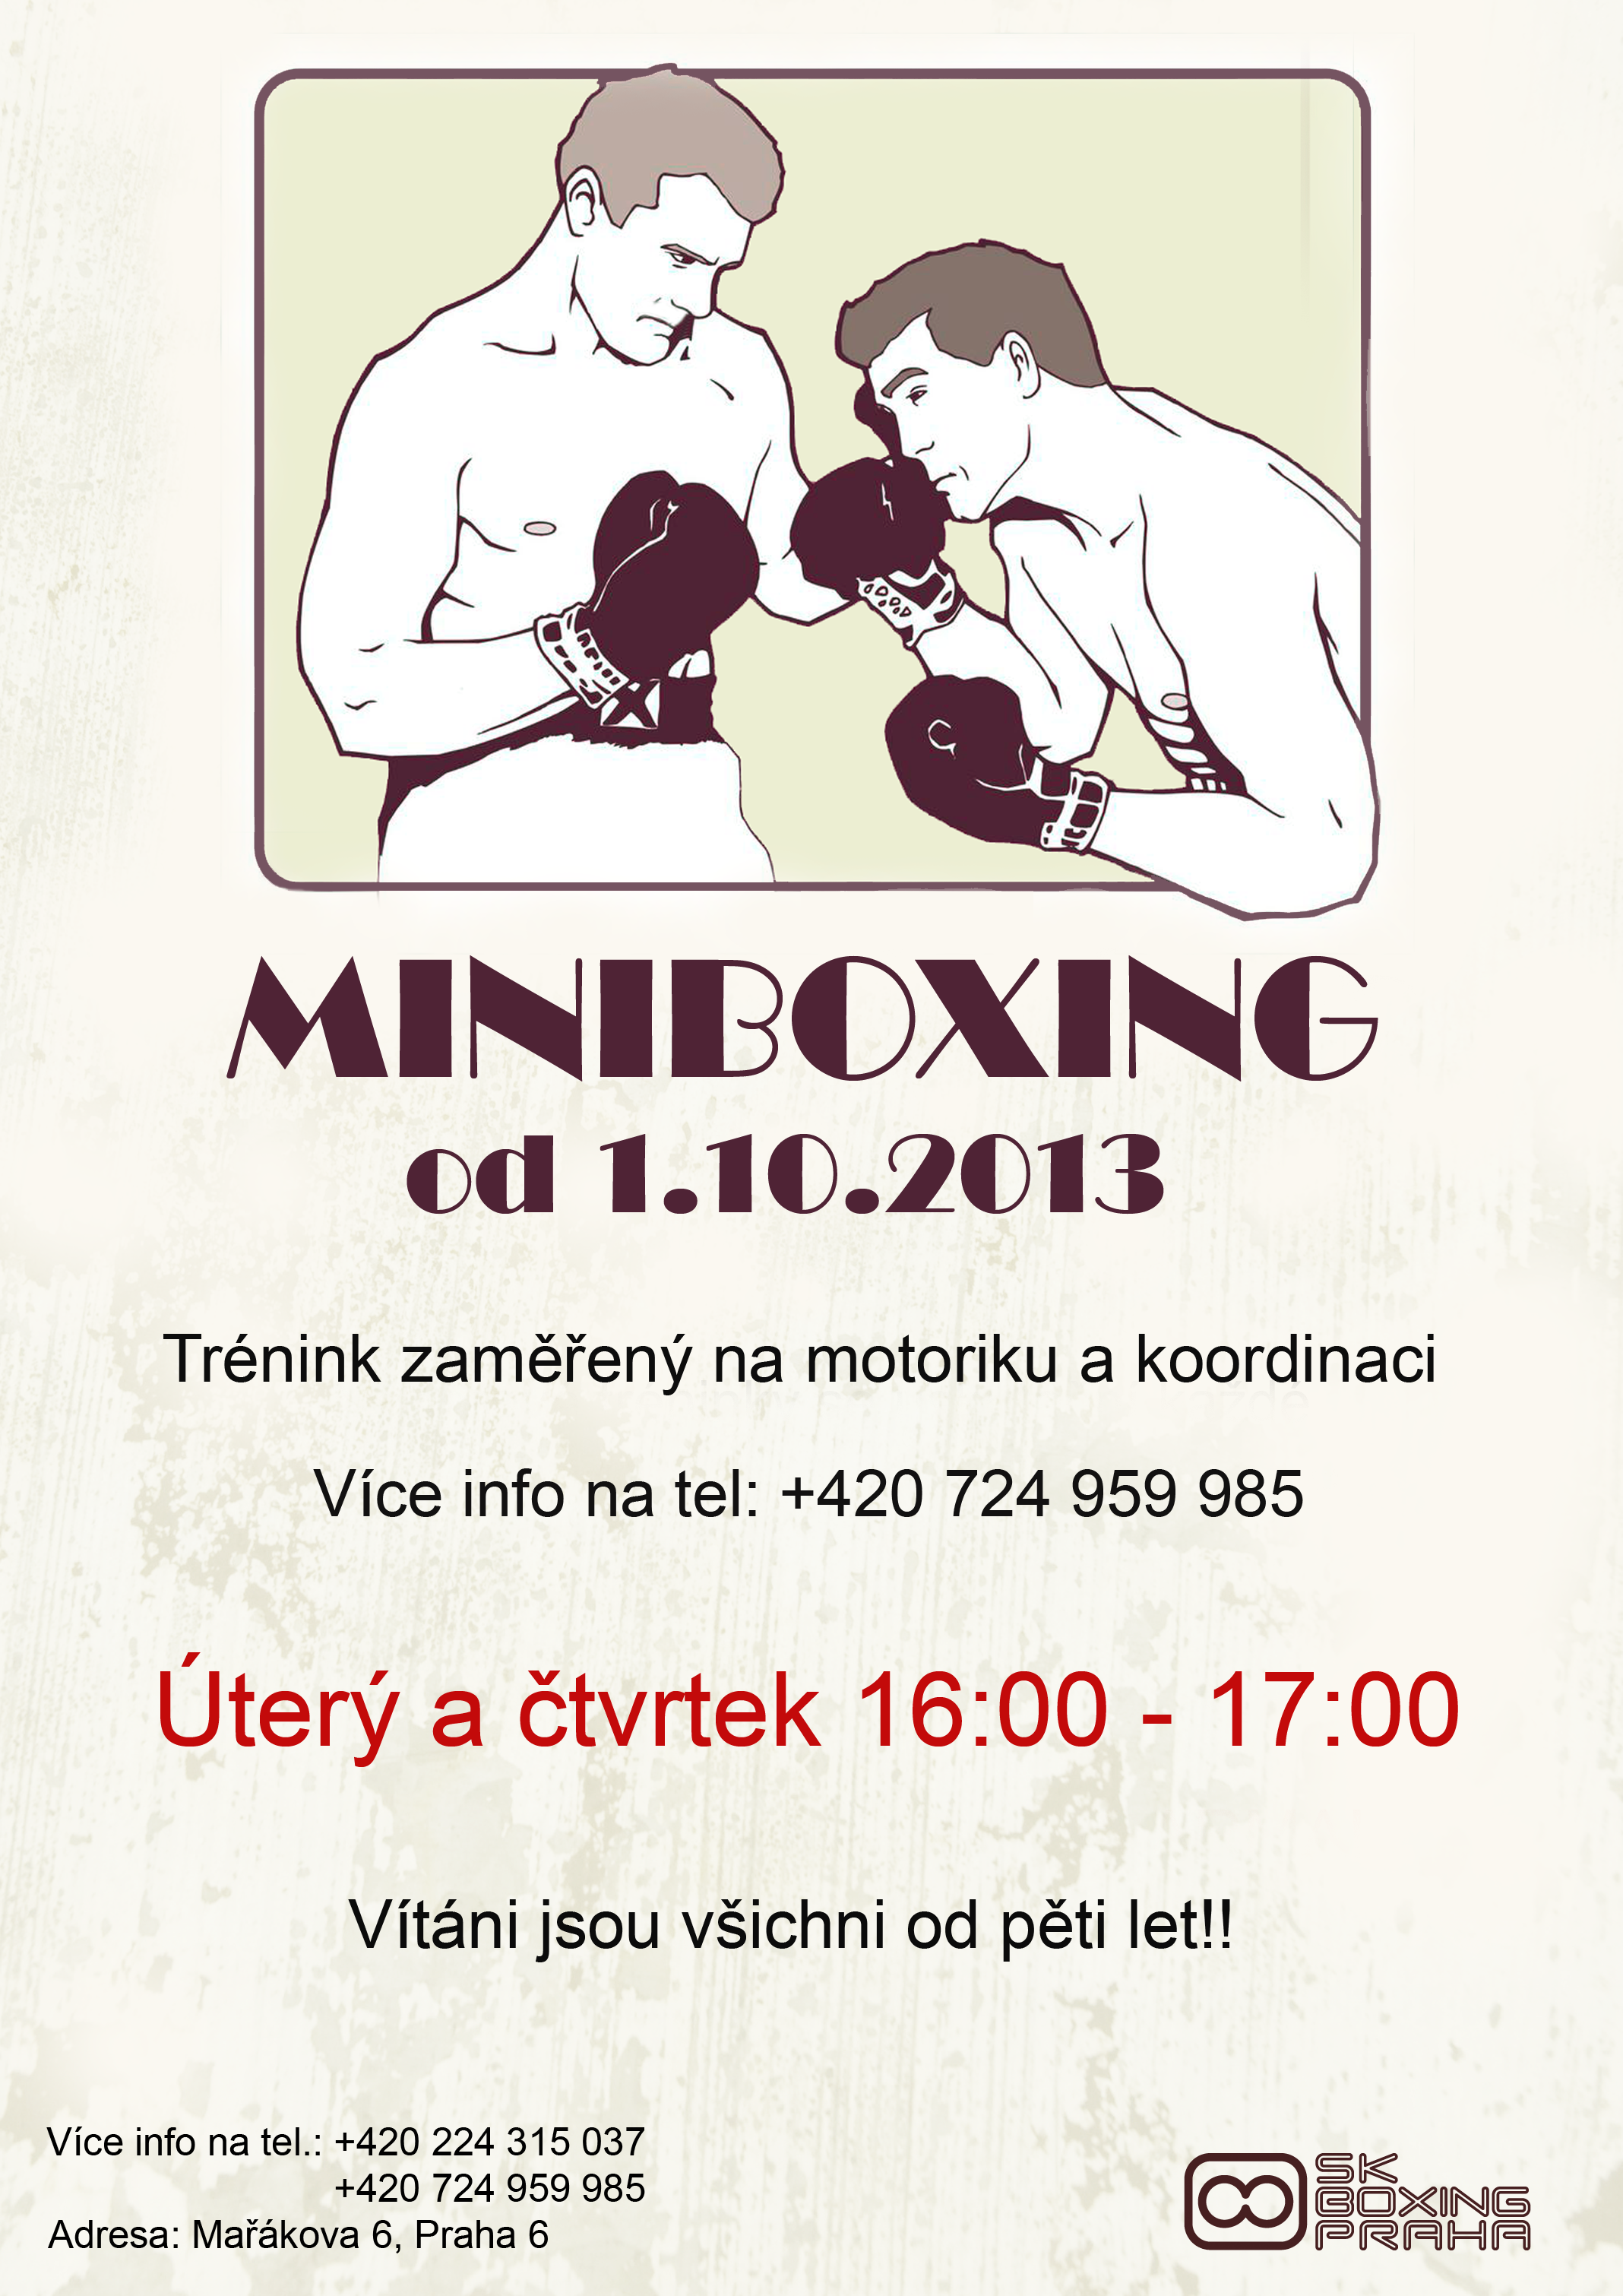 miniboxing new